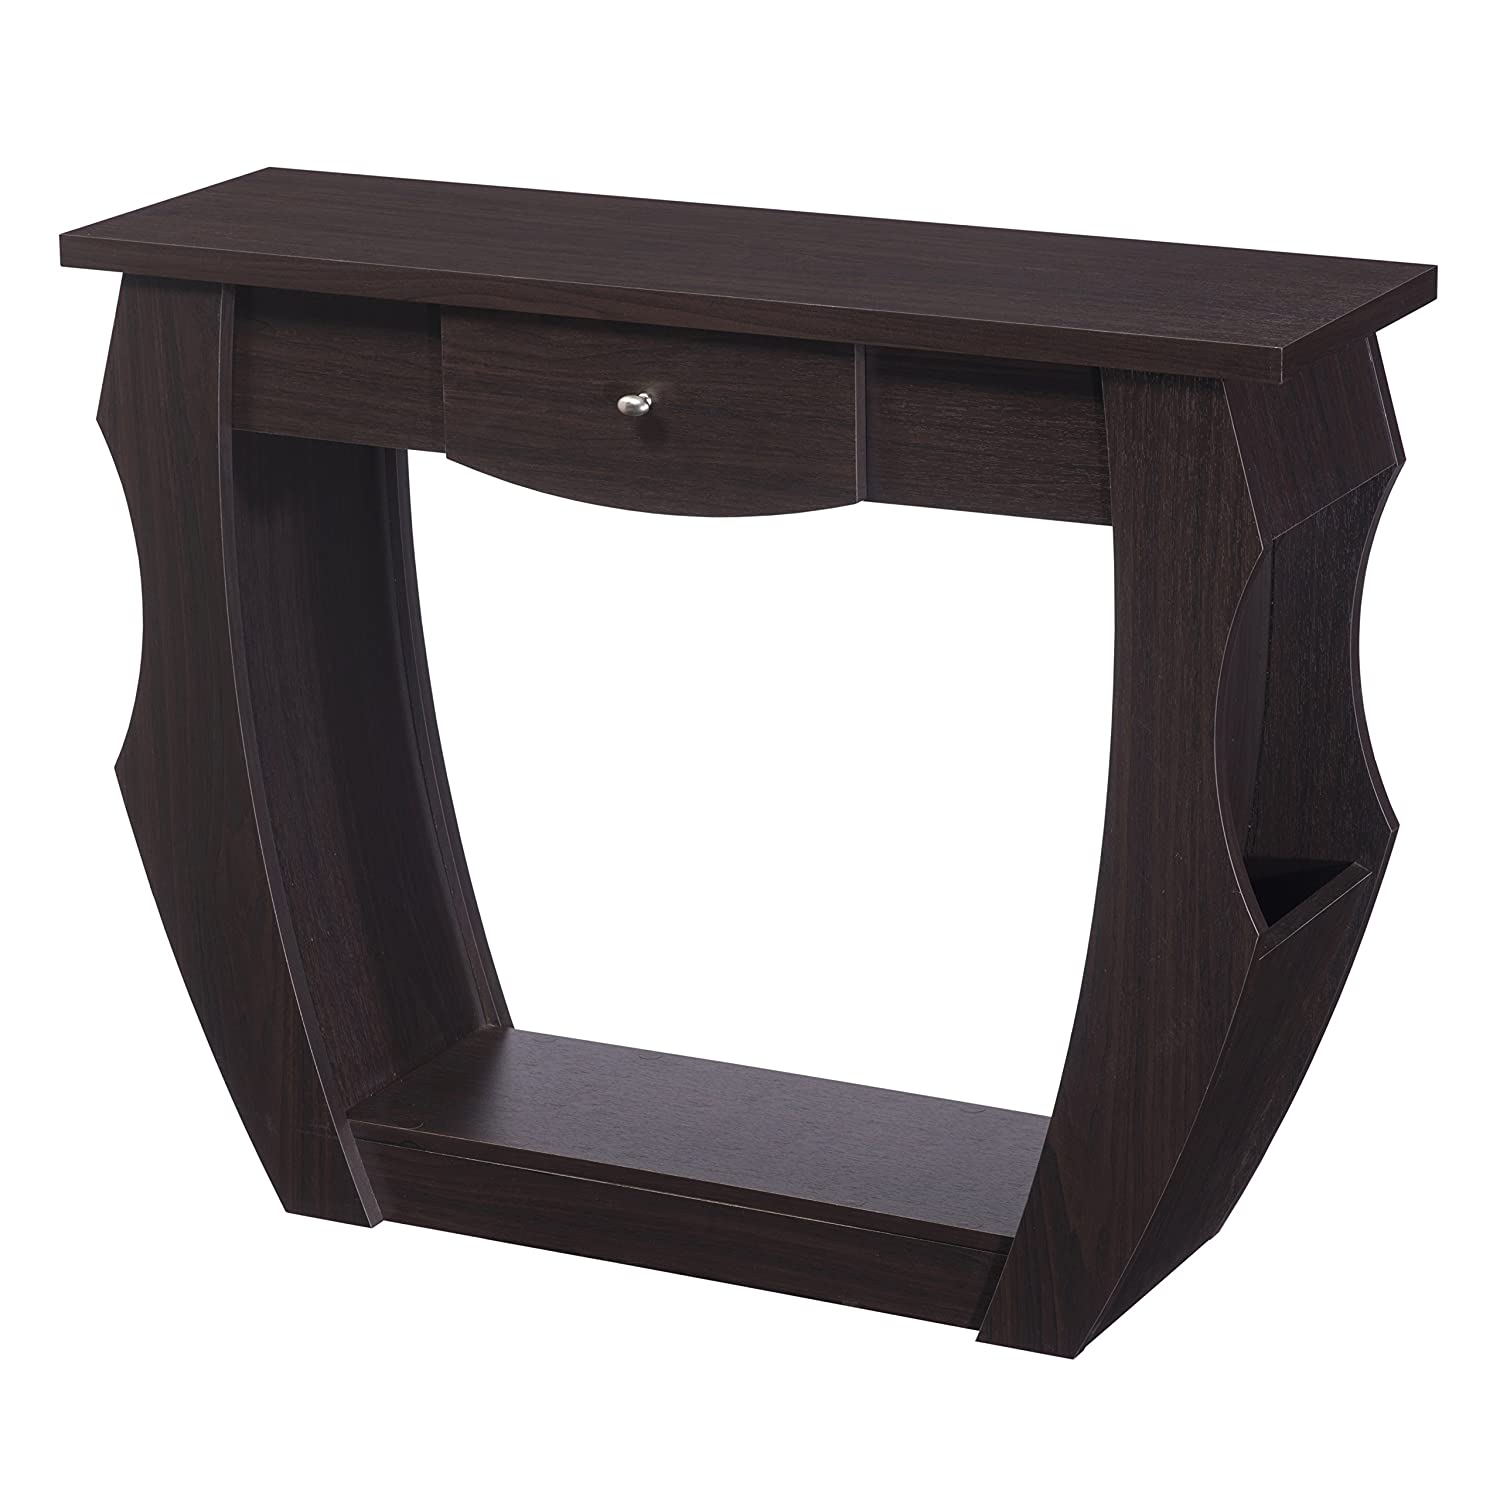 ioHOMES Reeves Contemporary Console Table, Walnut